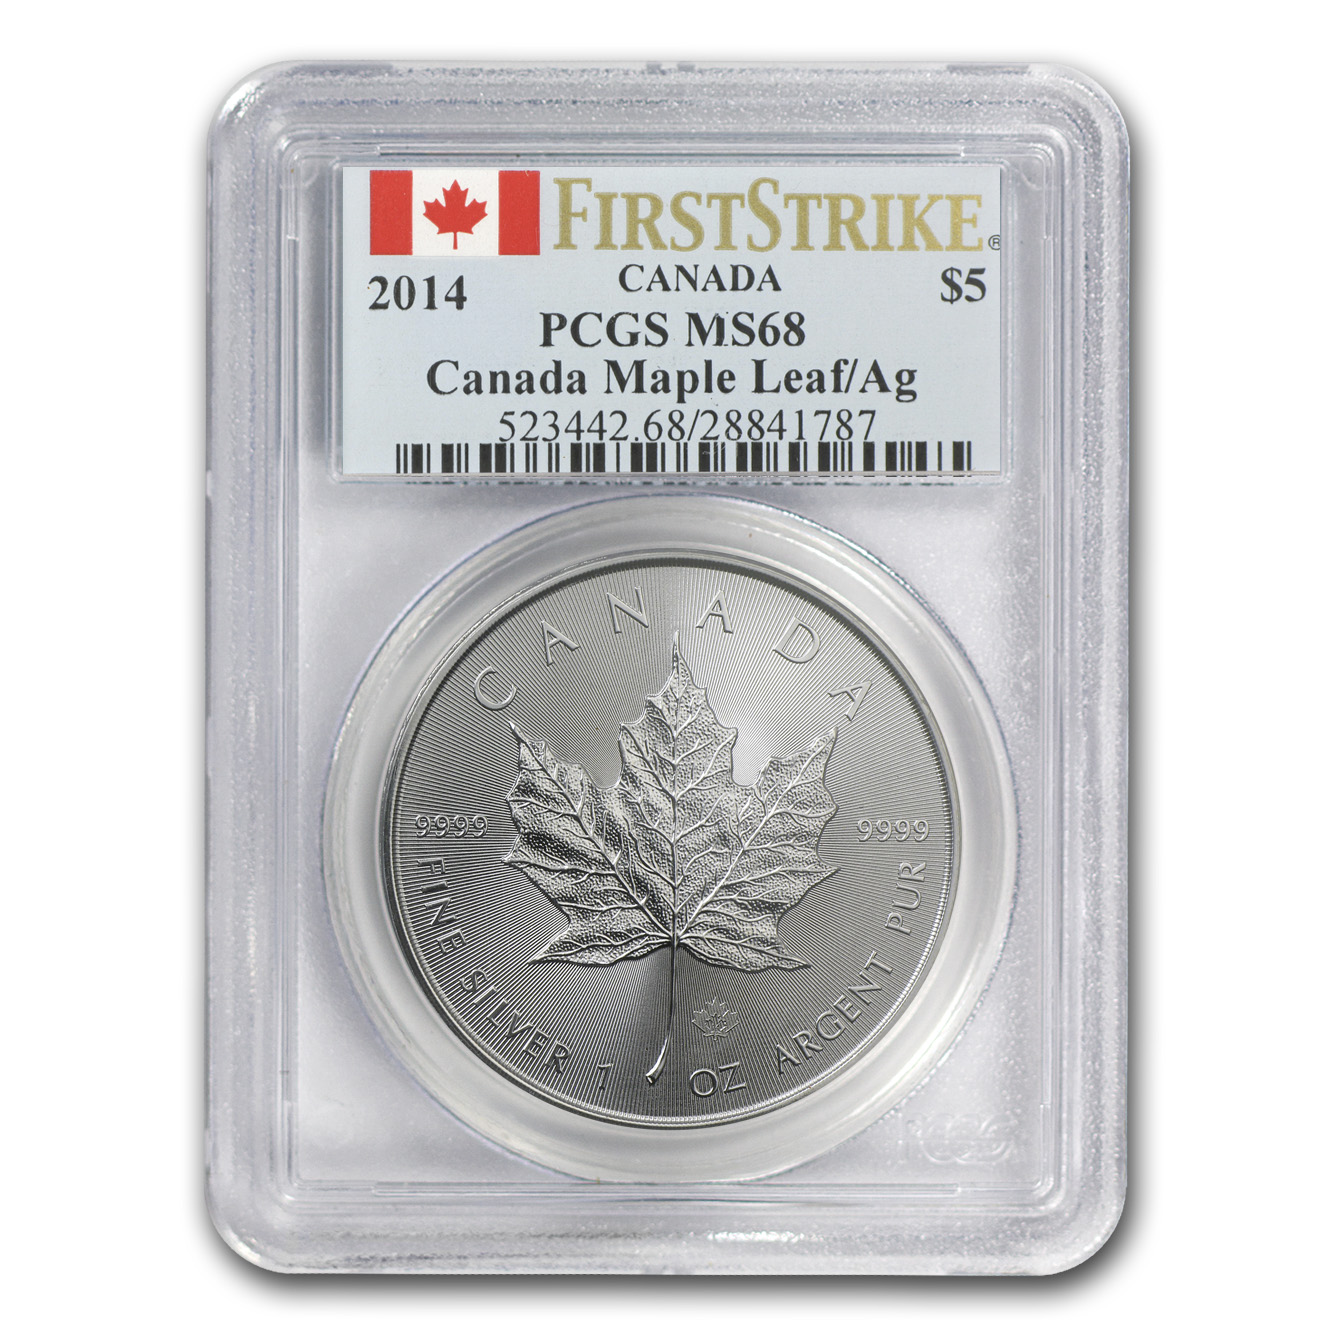 2014 1 oz Silver Canadian Maple Leaf MS-68 PCGS (First Strike)